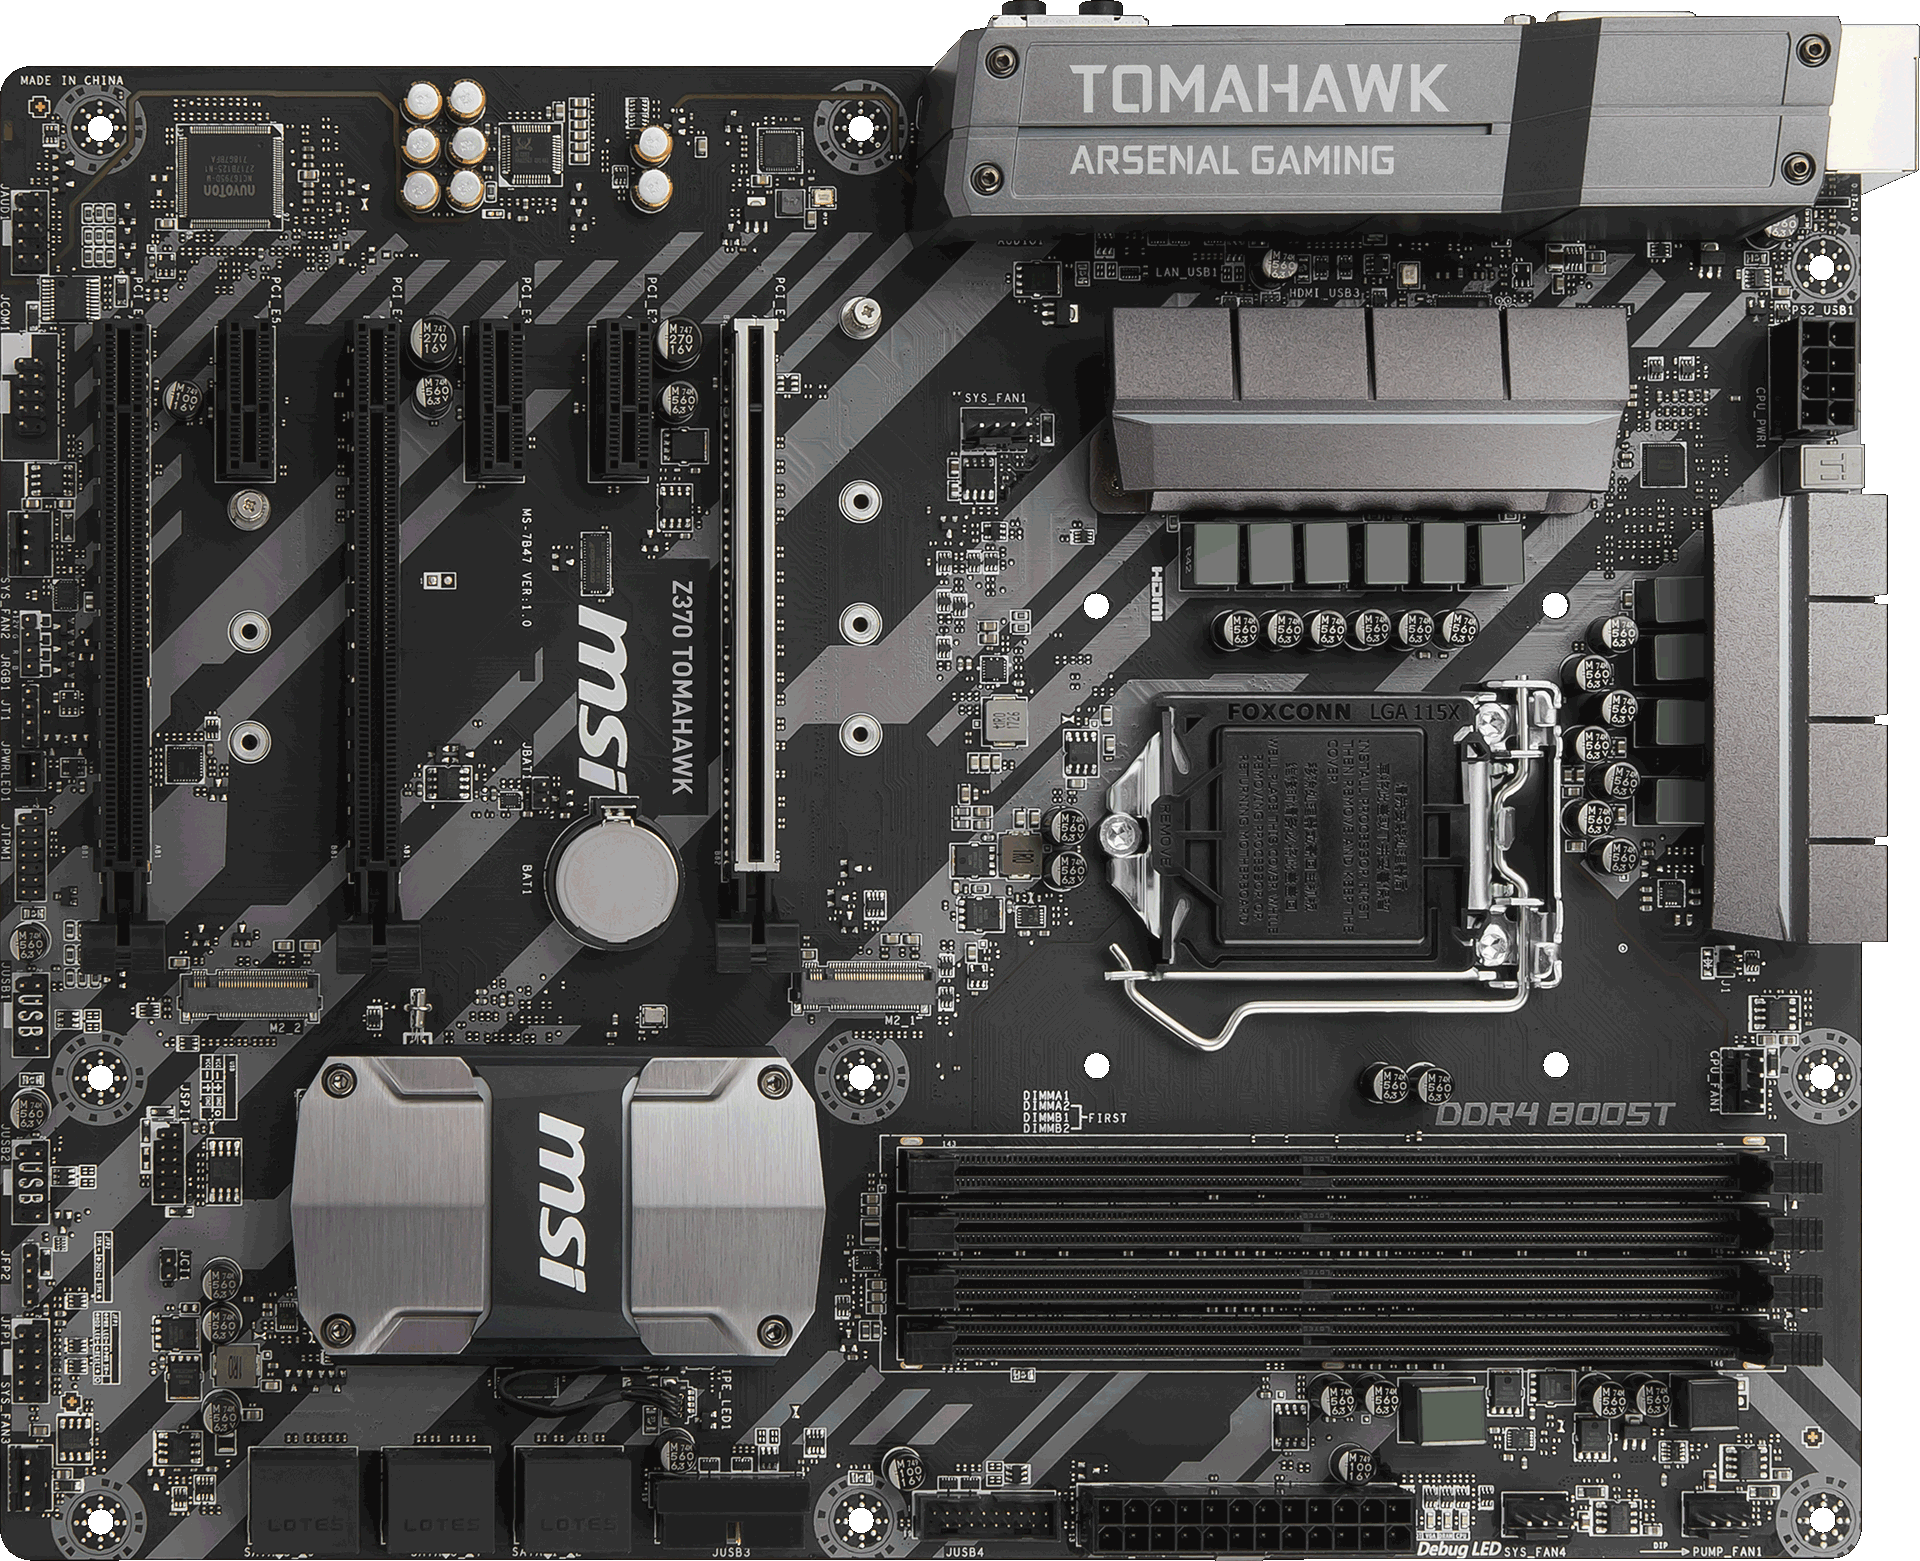 Z370 TOMAHAWK | Motherboard - The world leader in